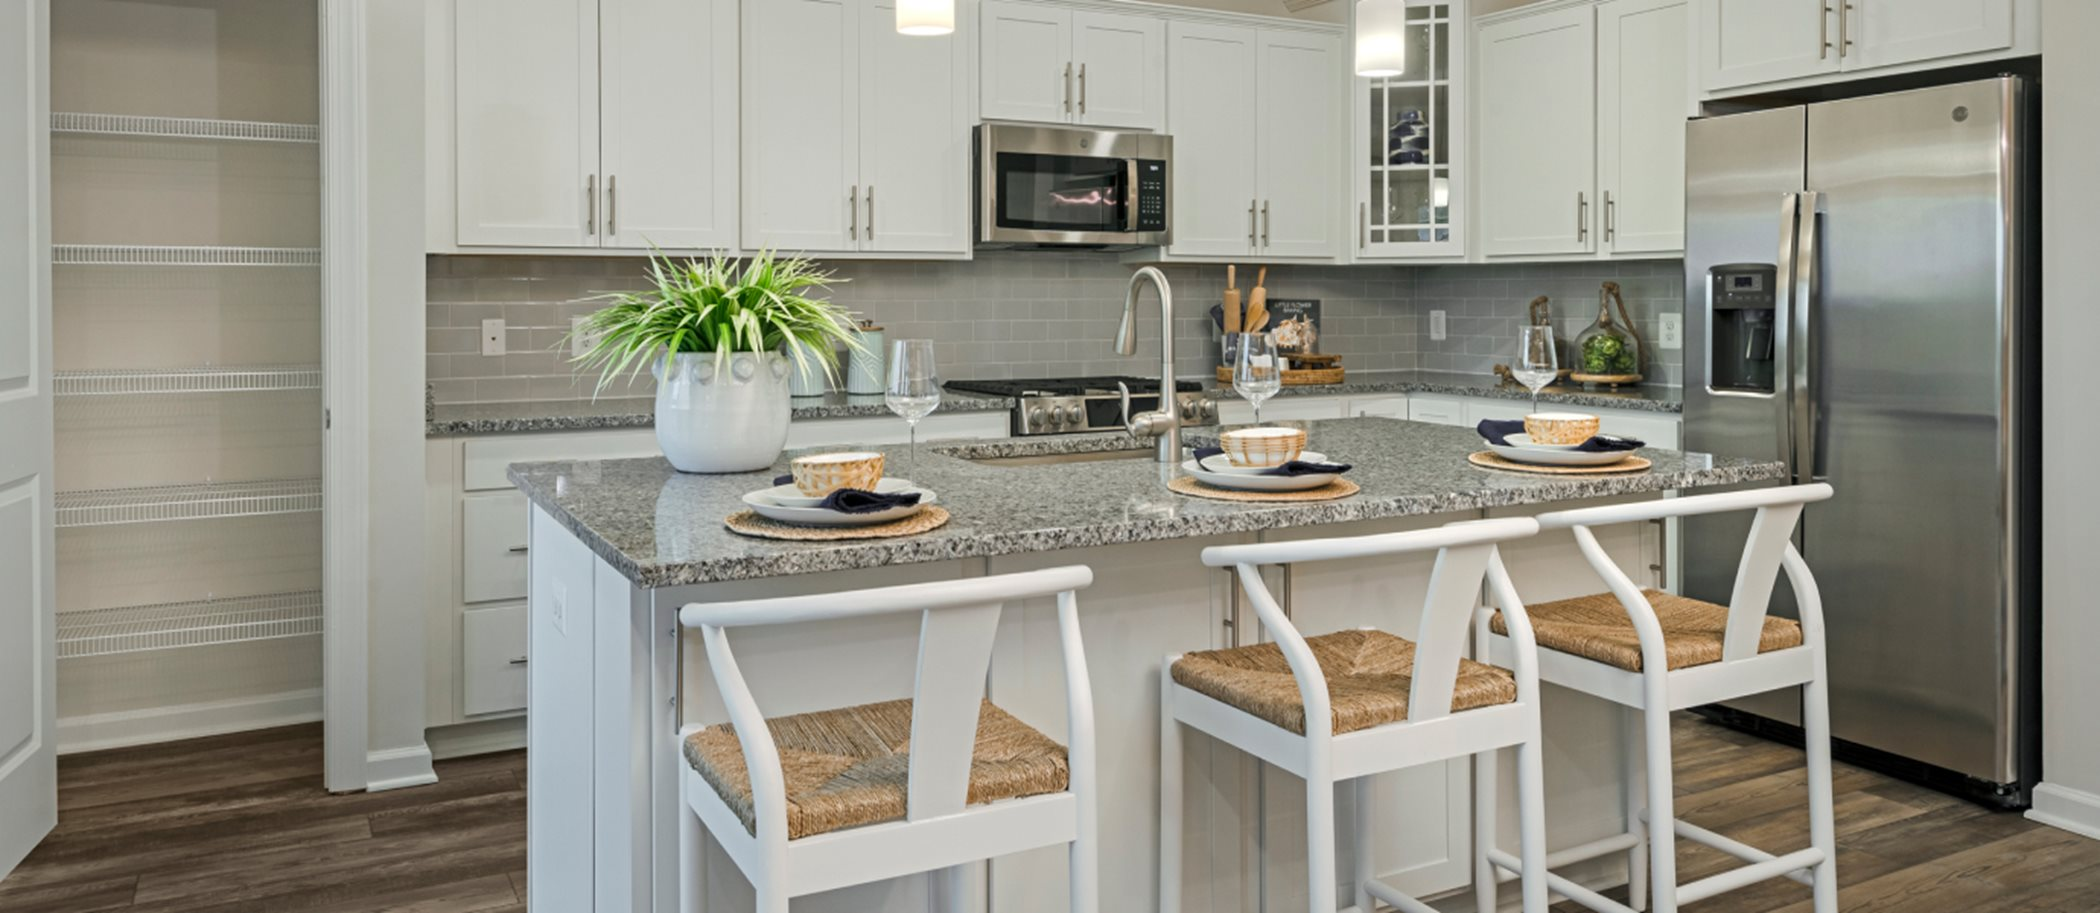 Seabrook at Willow Park Middleburg Kitchen